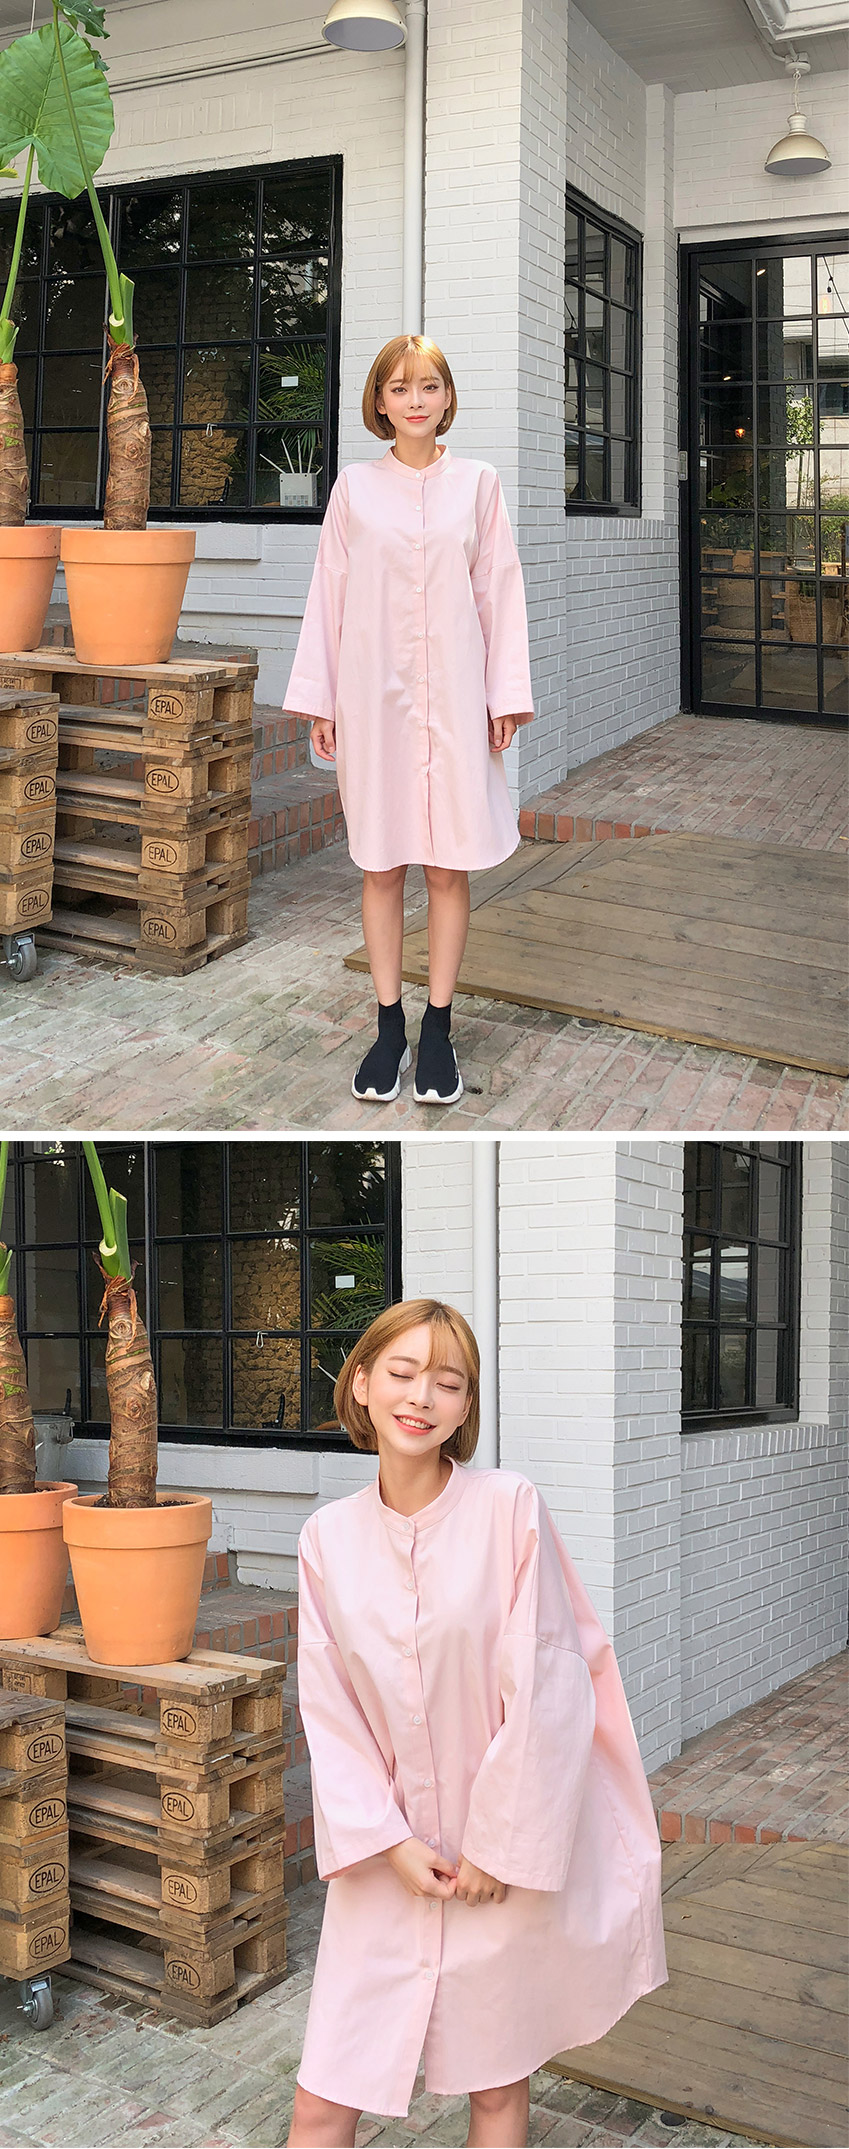 //cdn.nhanh.vn/cdn/store/29770/psCT/20181003/9325619/_CHUU_MADE__Cotton_Long_Shirt_(35).jpg